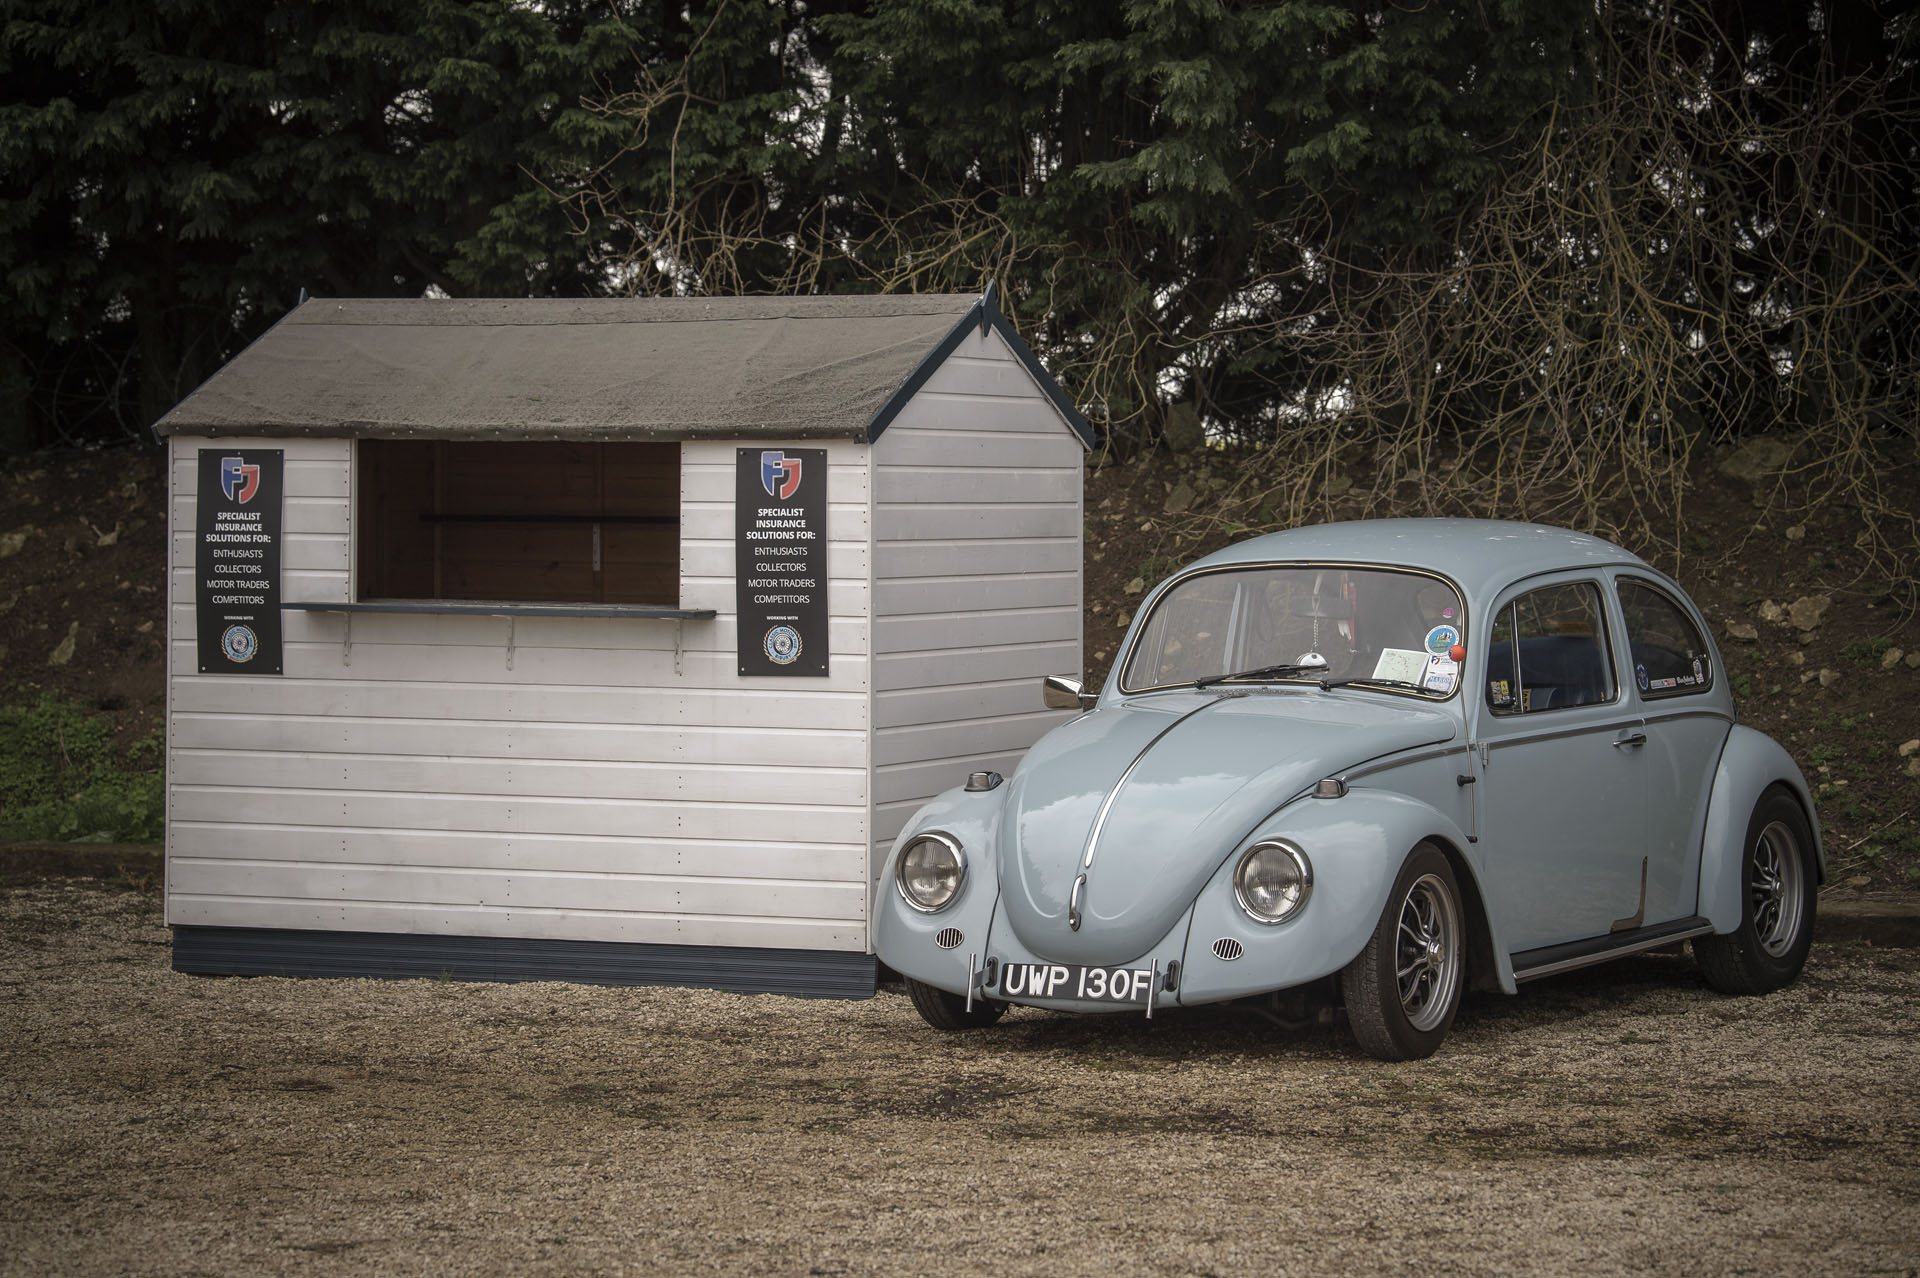 Classic Volkswagen with Footman James hut